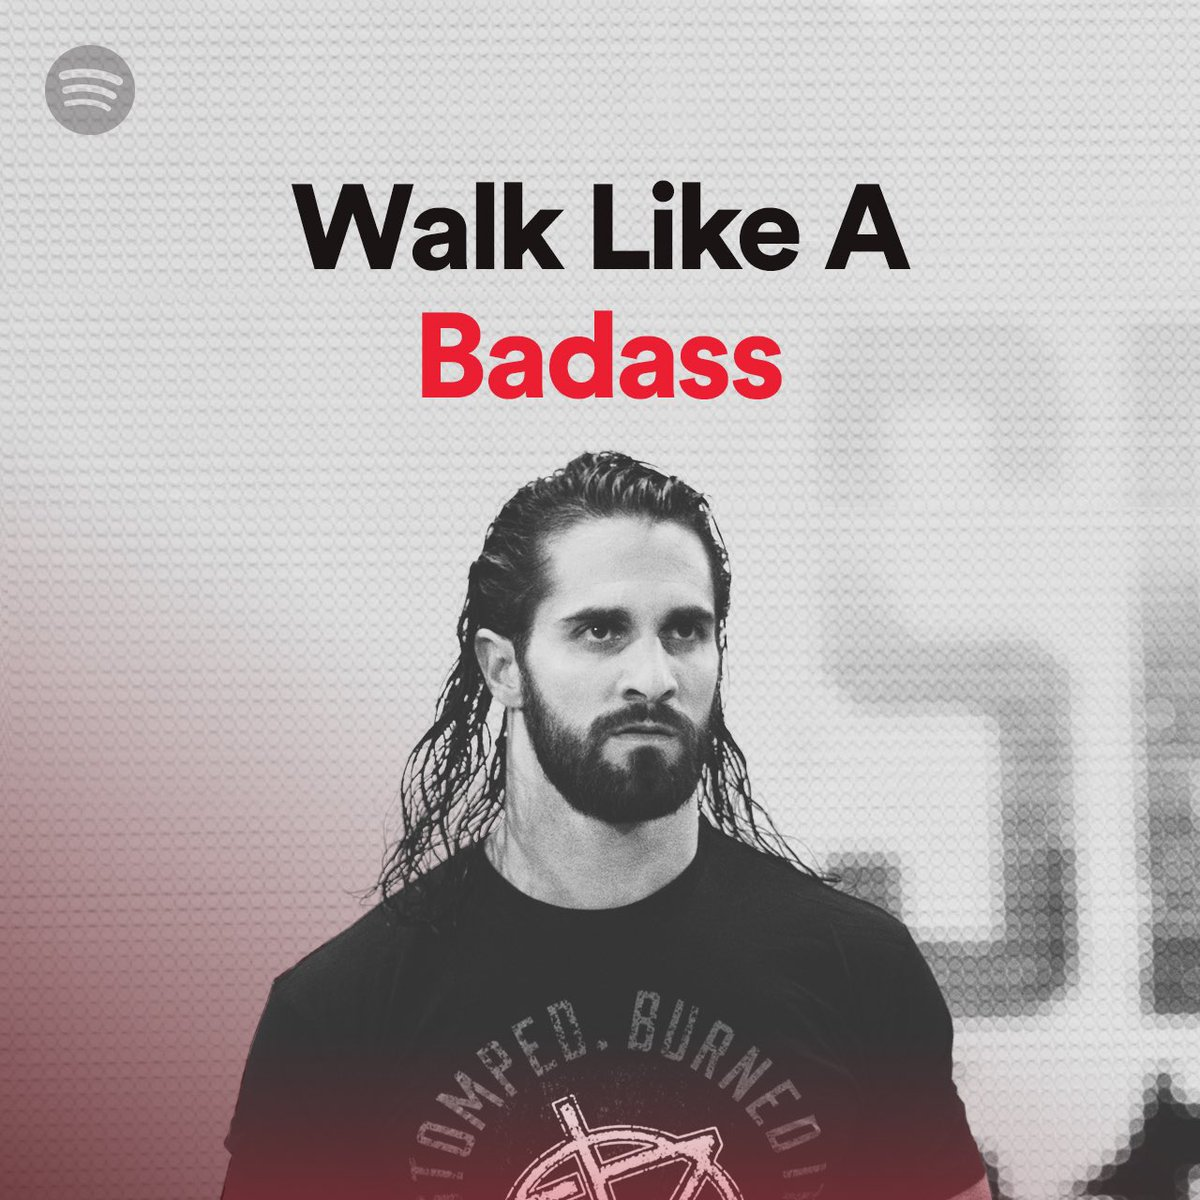 From building it up as the Architect to burning it down as the Kingslayer, music has always been a part of my success. Hear my hand-picked anthems this week only on @Spotify's #WalkLikeABadass Playlist. https://spoti.fi/2FGjGE2